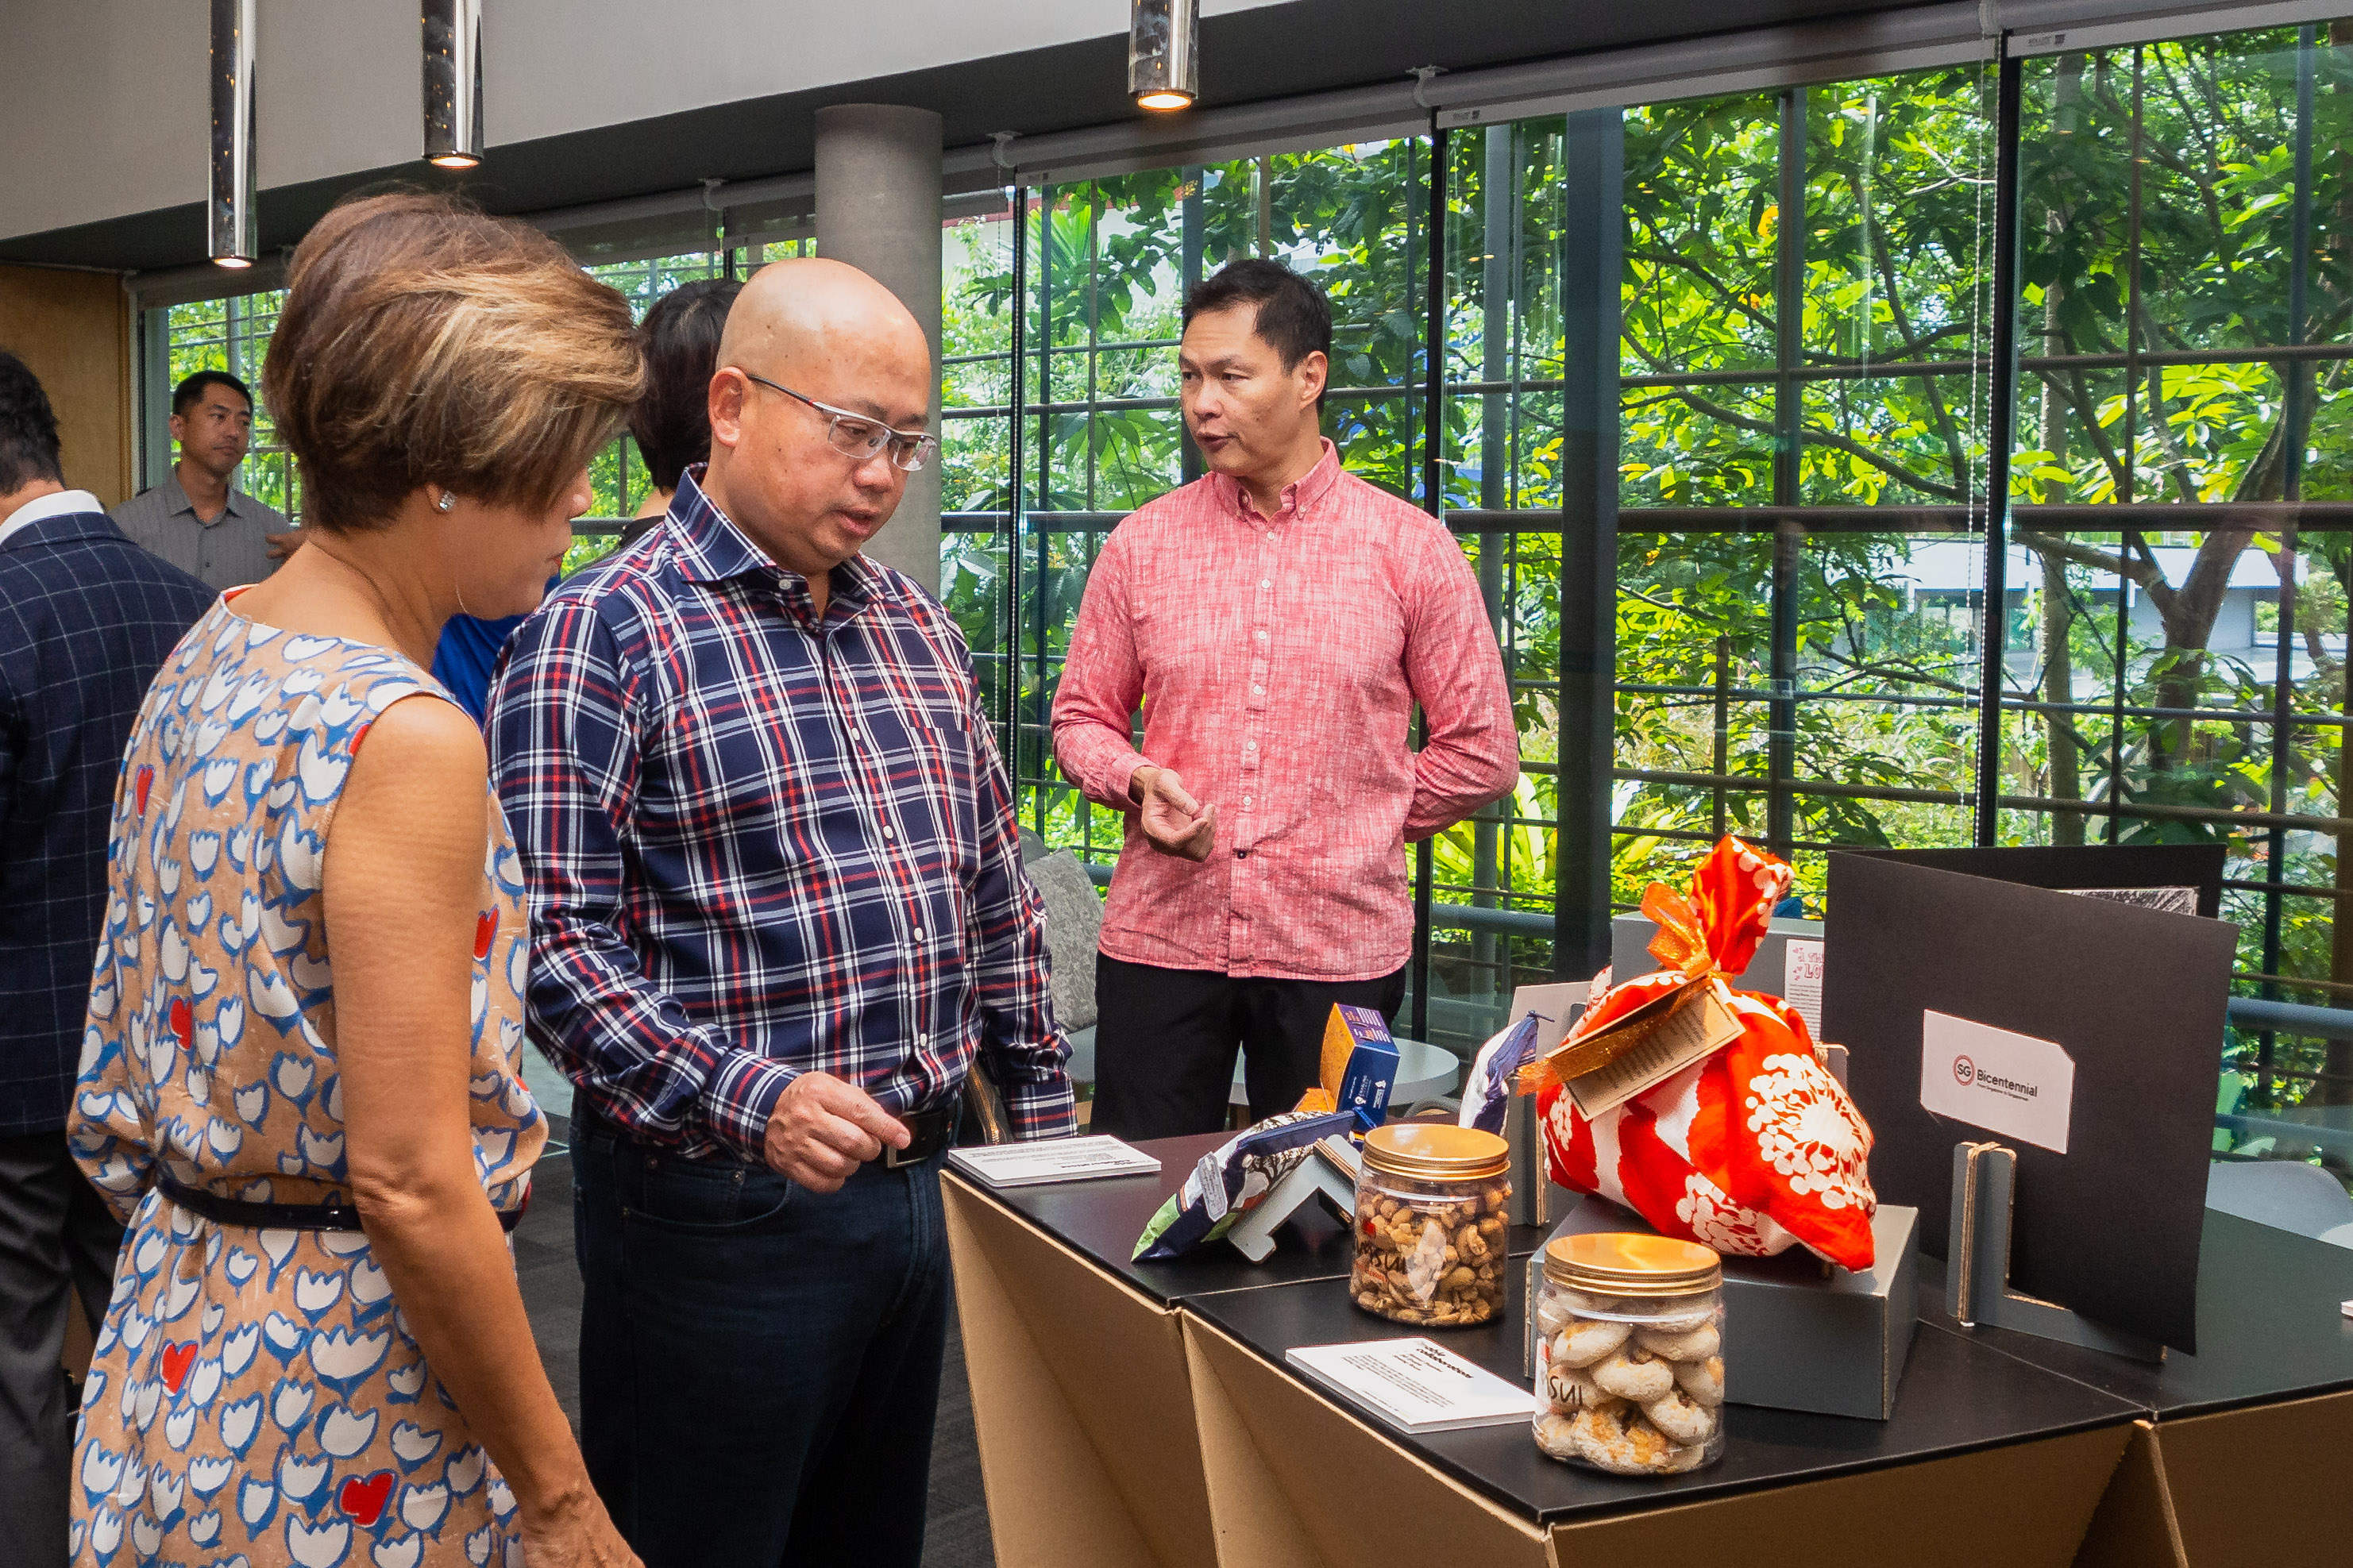 Ms Kan Shook Wah and Mr Yeo Phee Teik admiring items on display